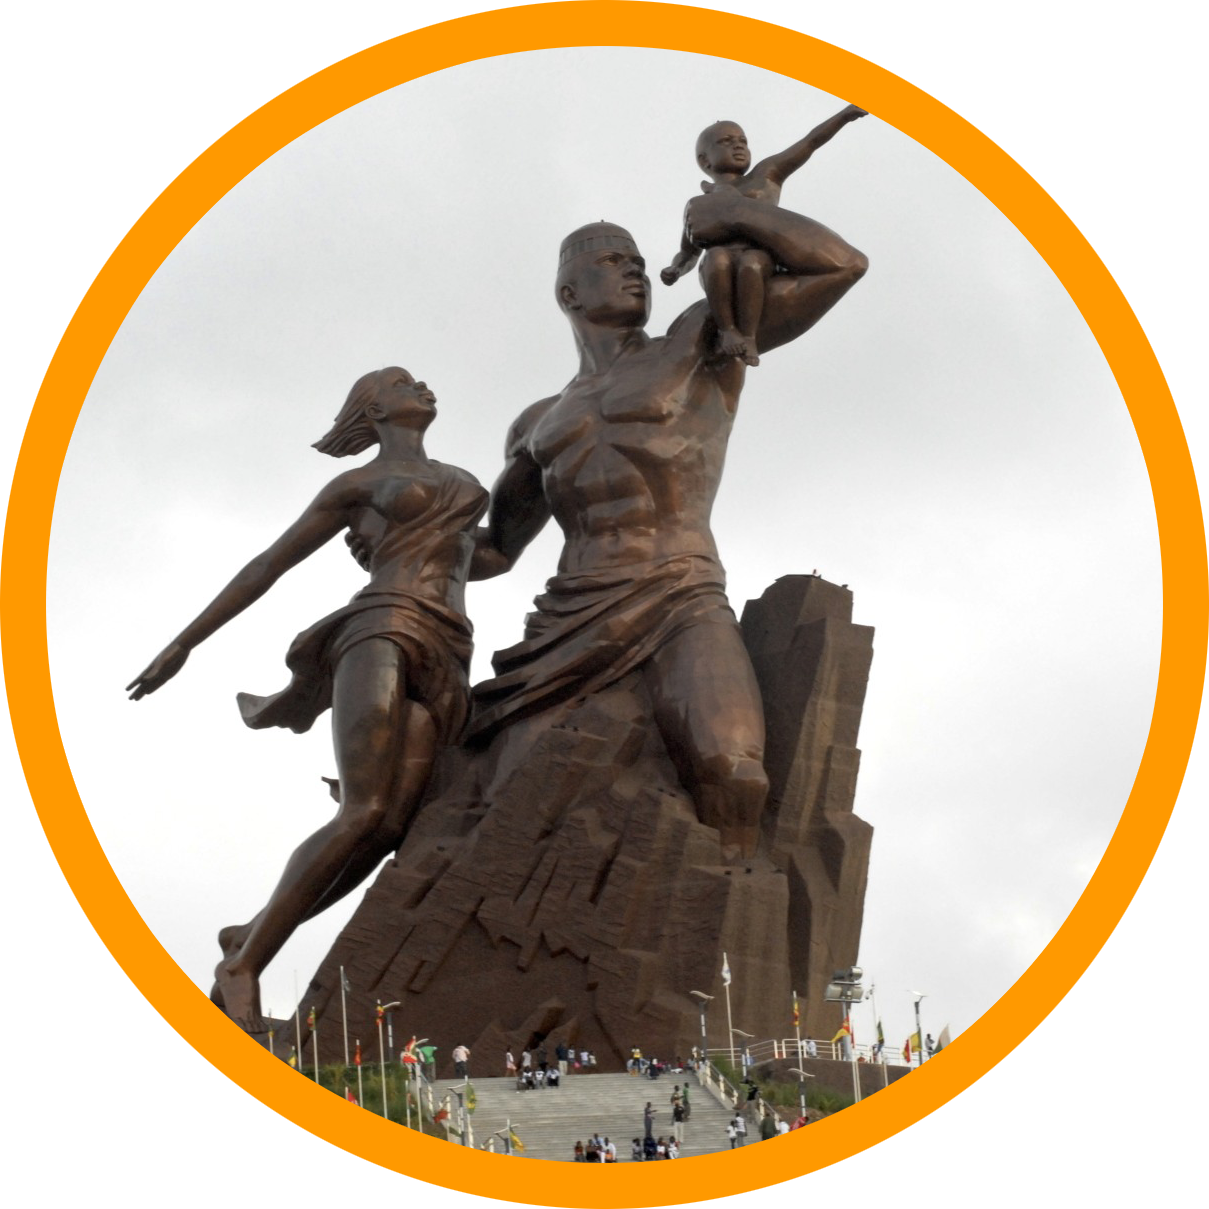 Dakar-Senegal-Monument-of-Independance-1D